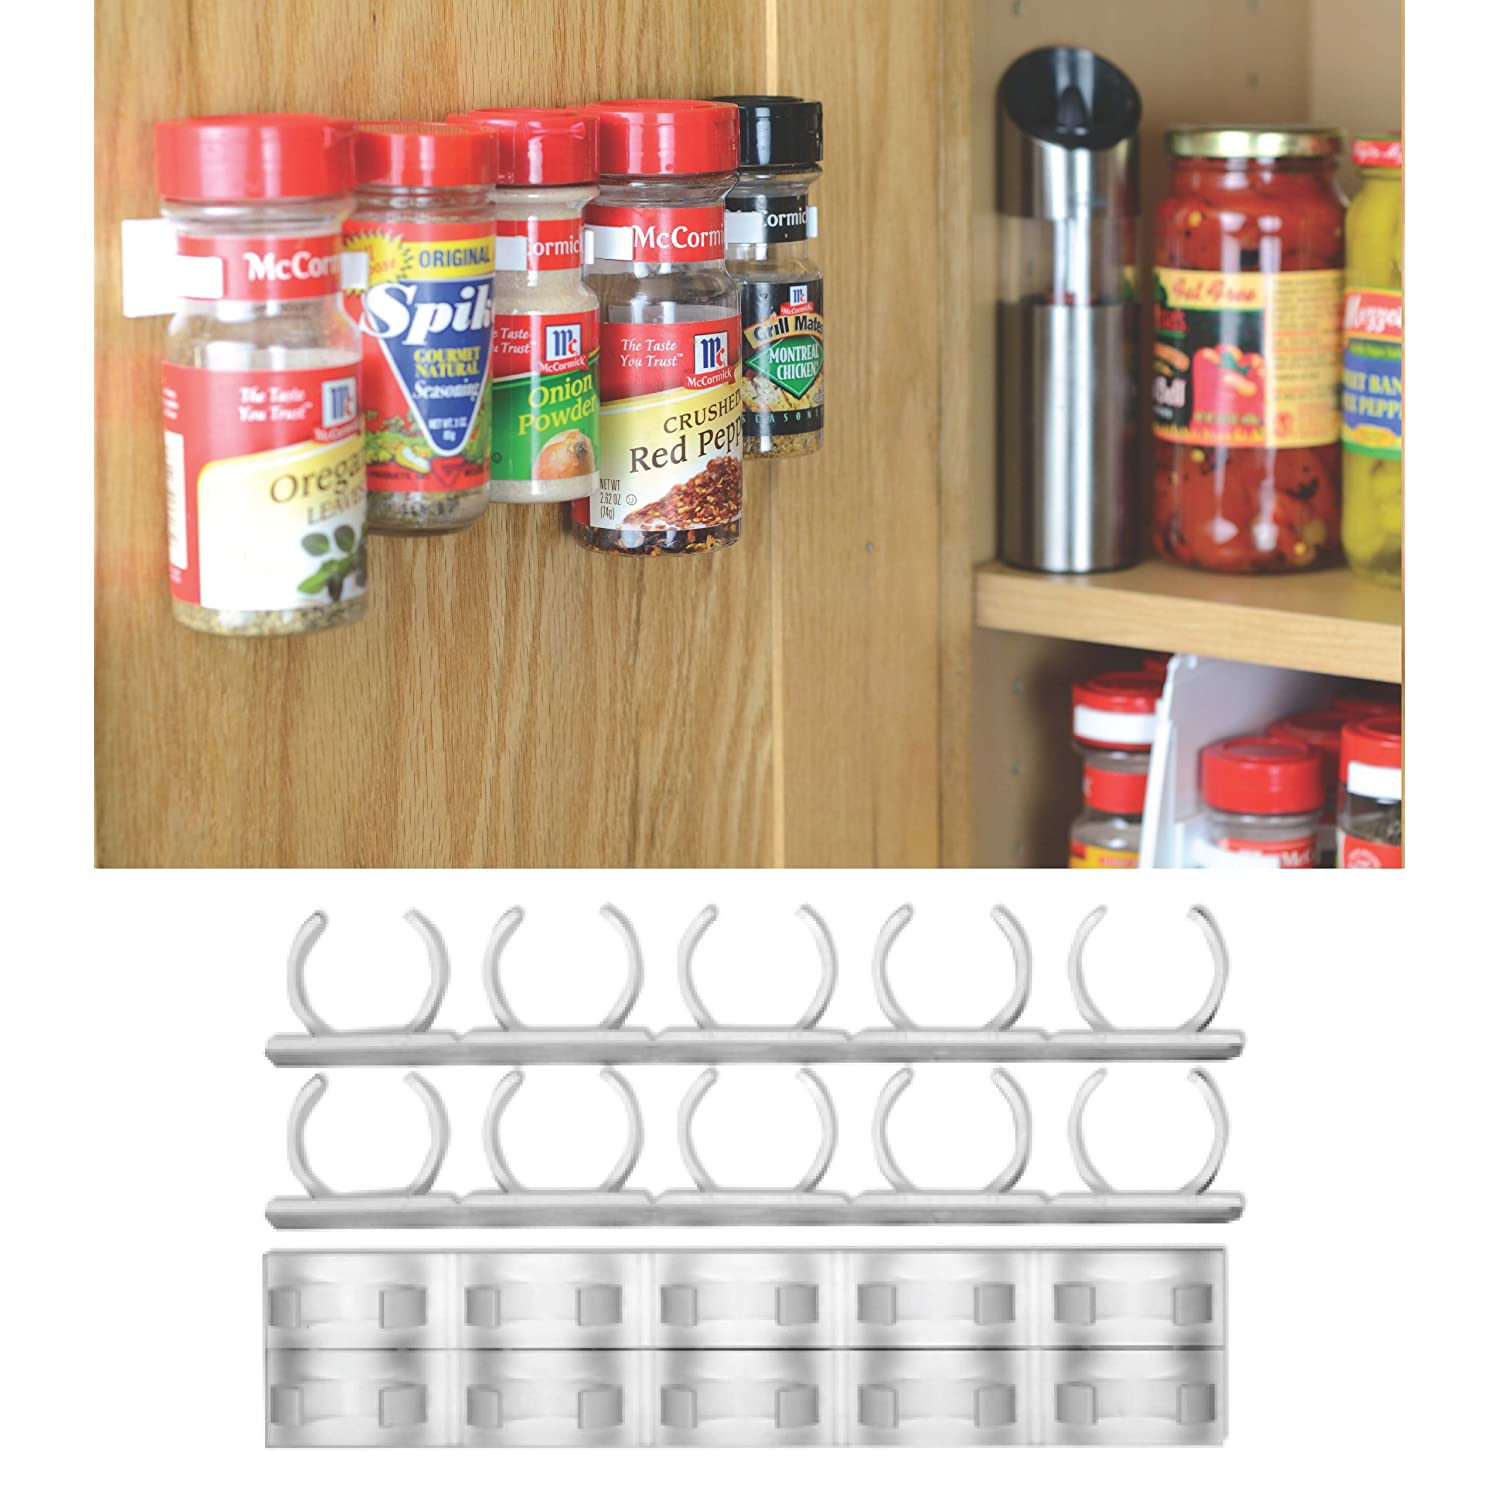 Kitchen Organization Amazon: 10 Things To Use In Kitchen Organization